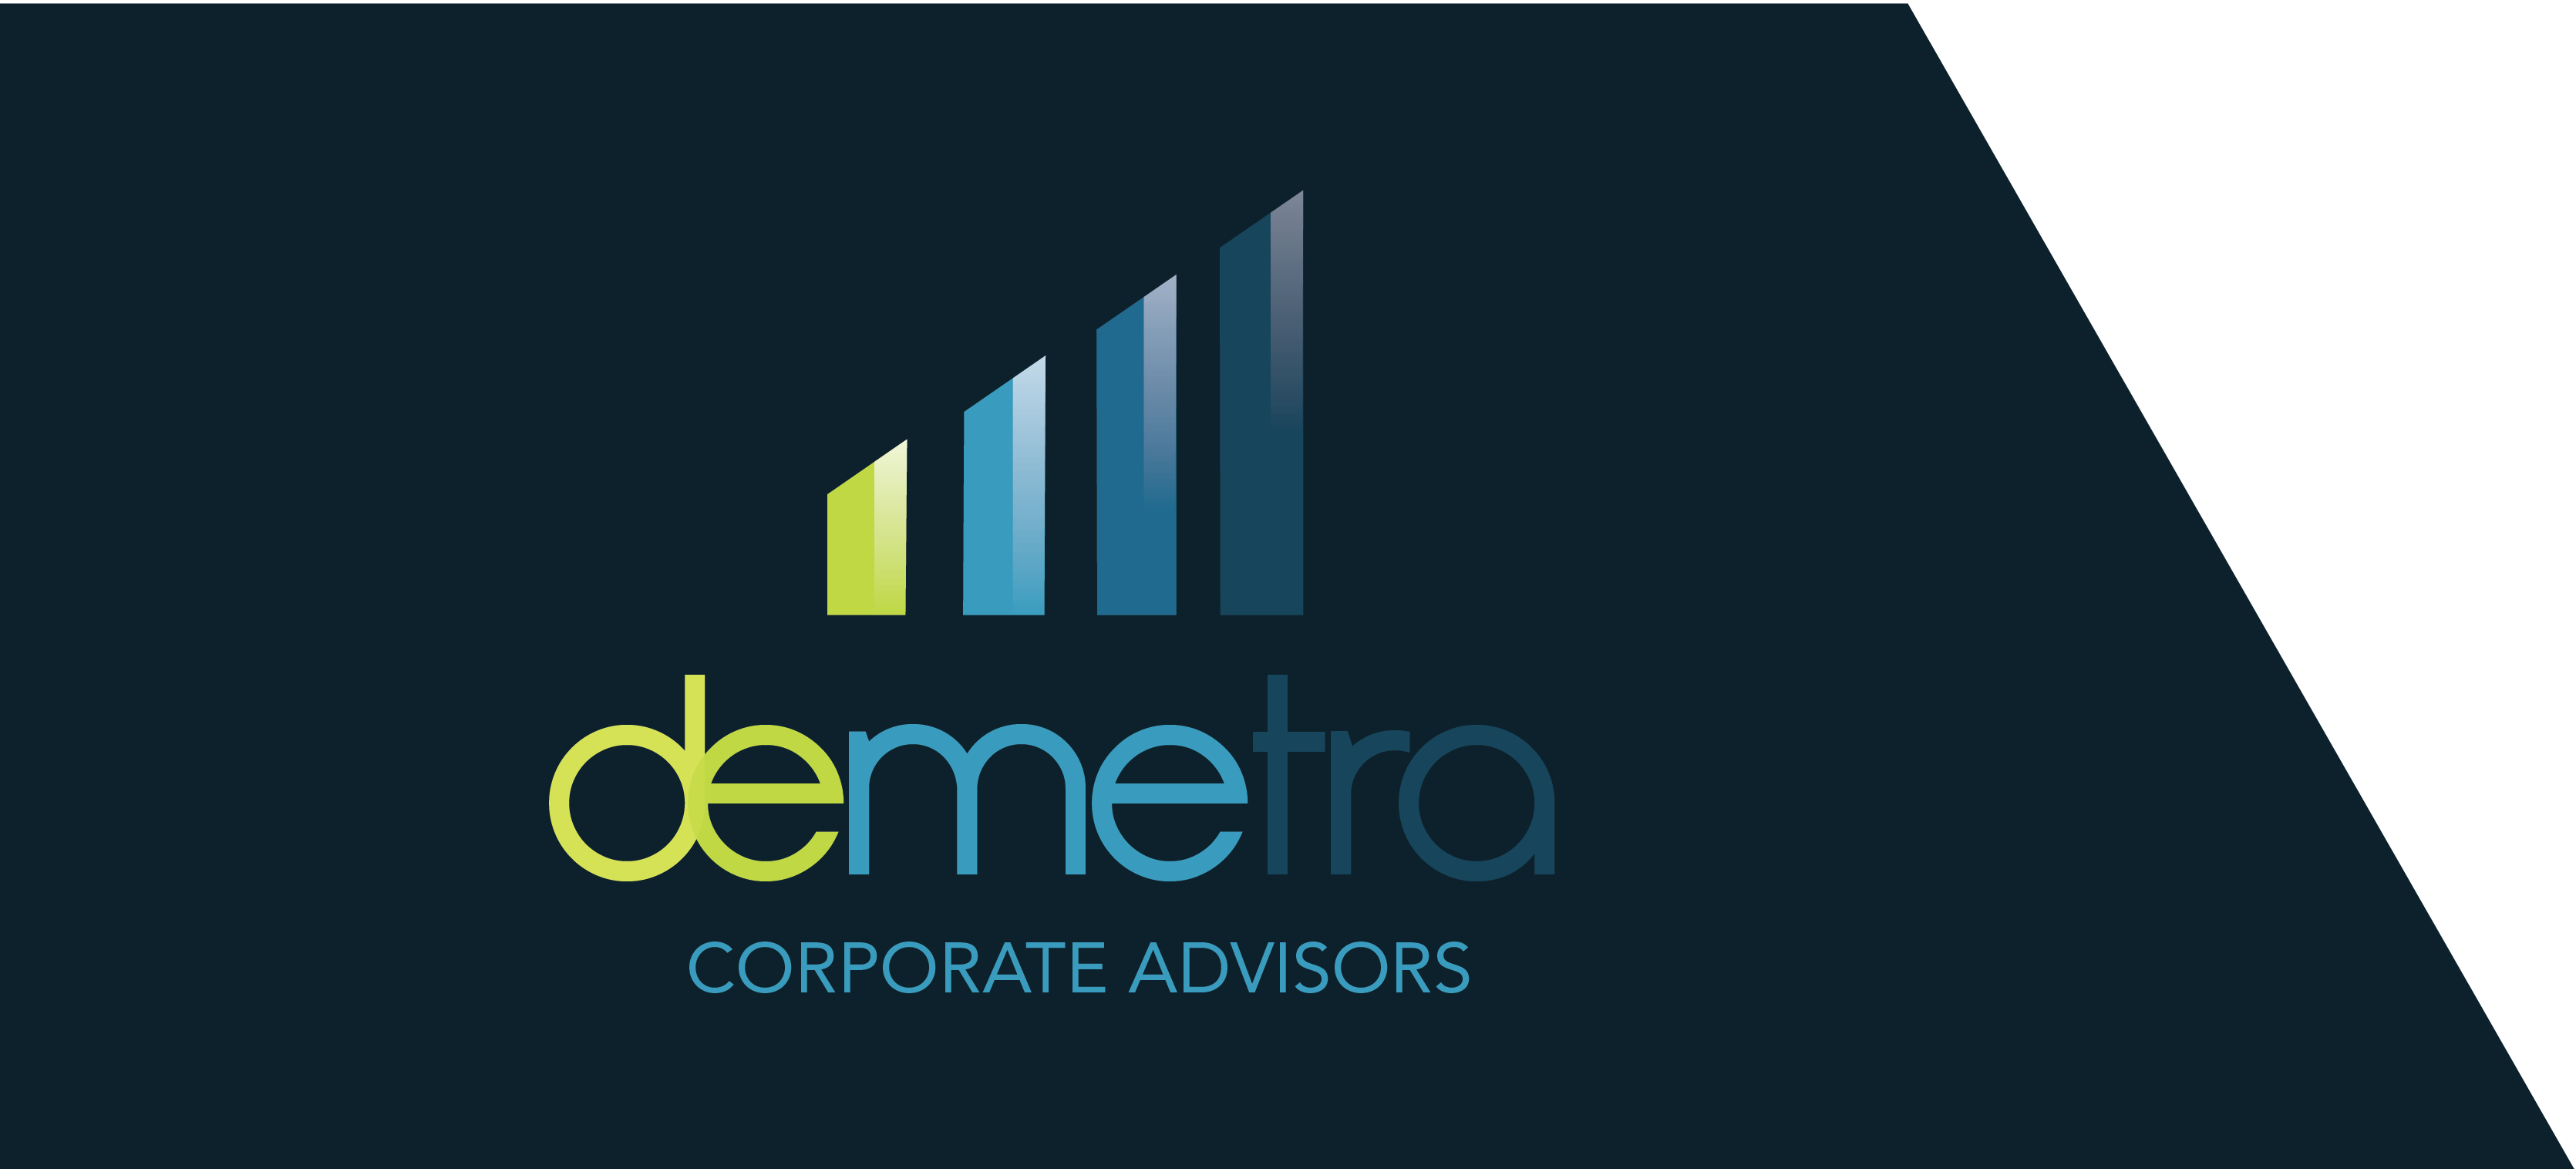 Demetra Corporate Advisors